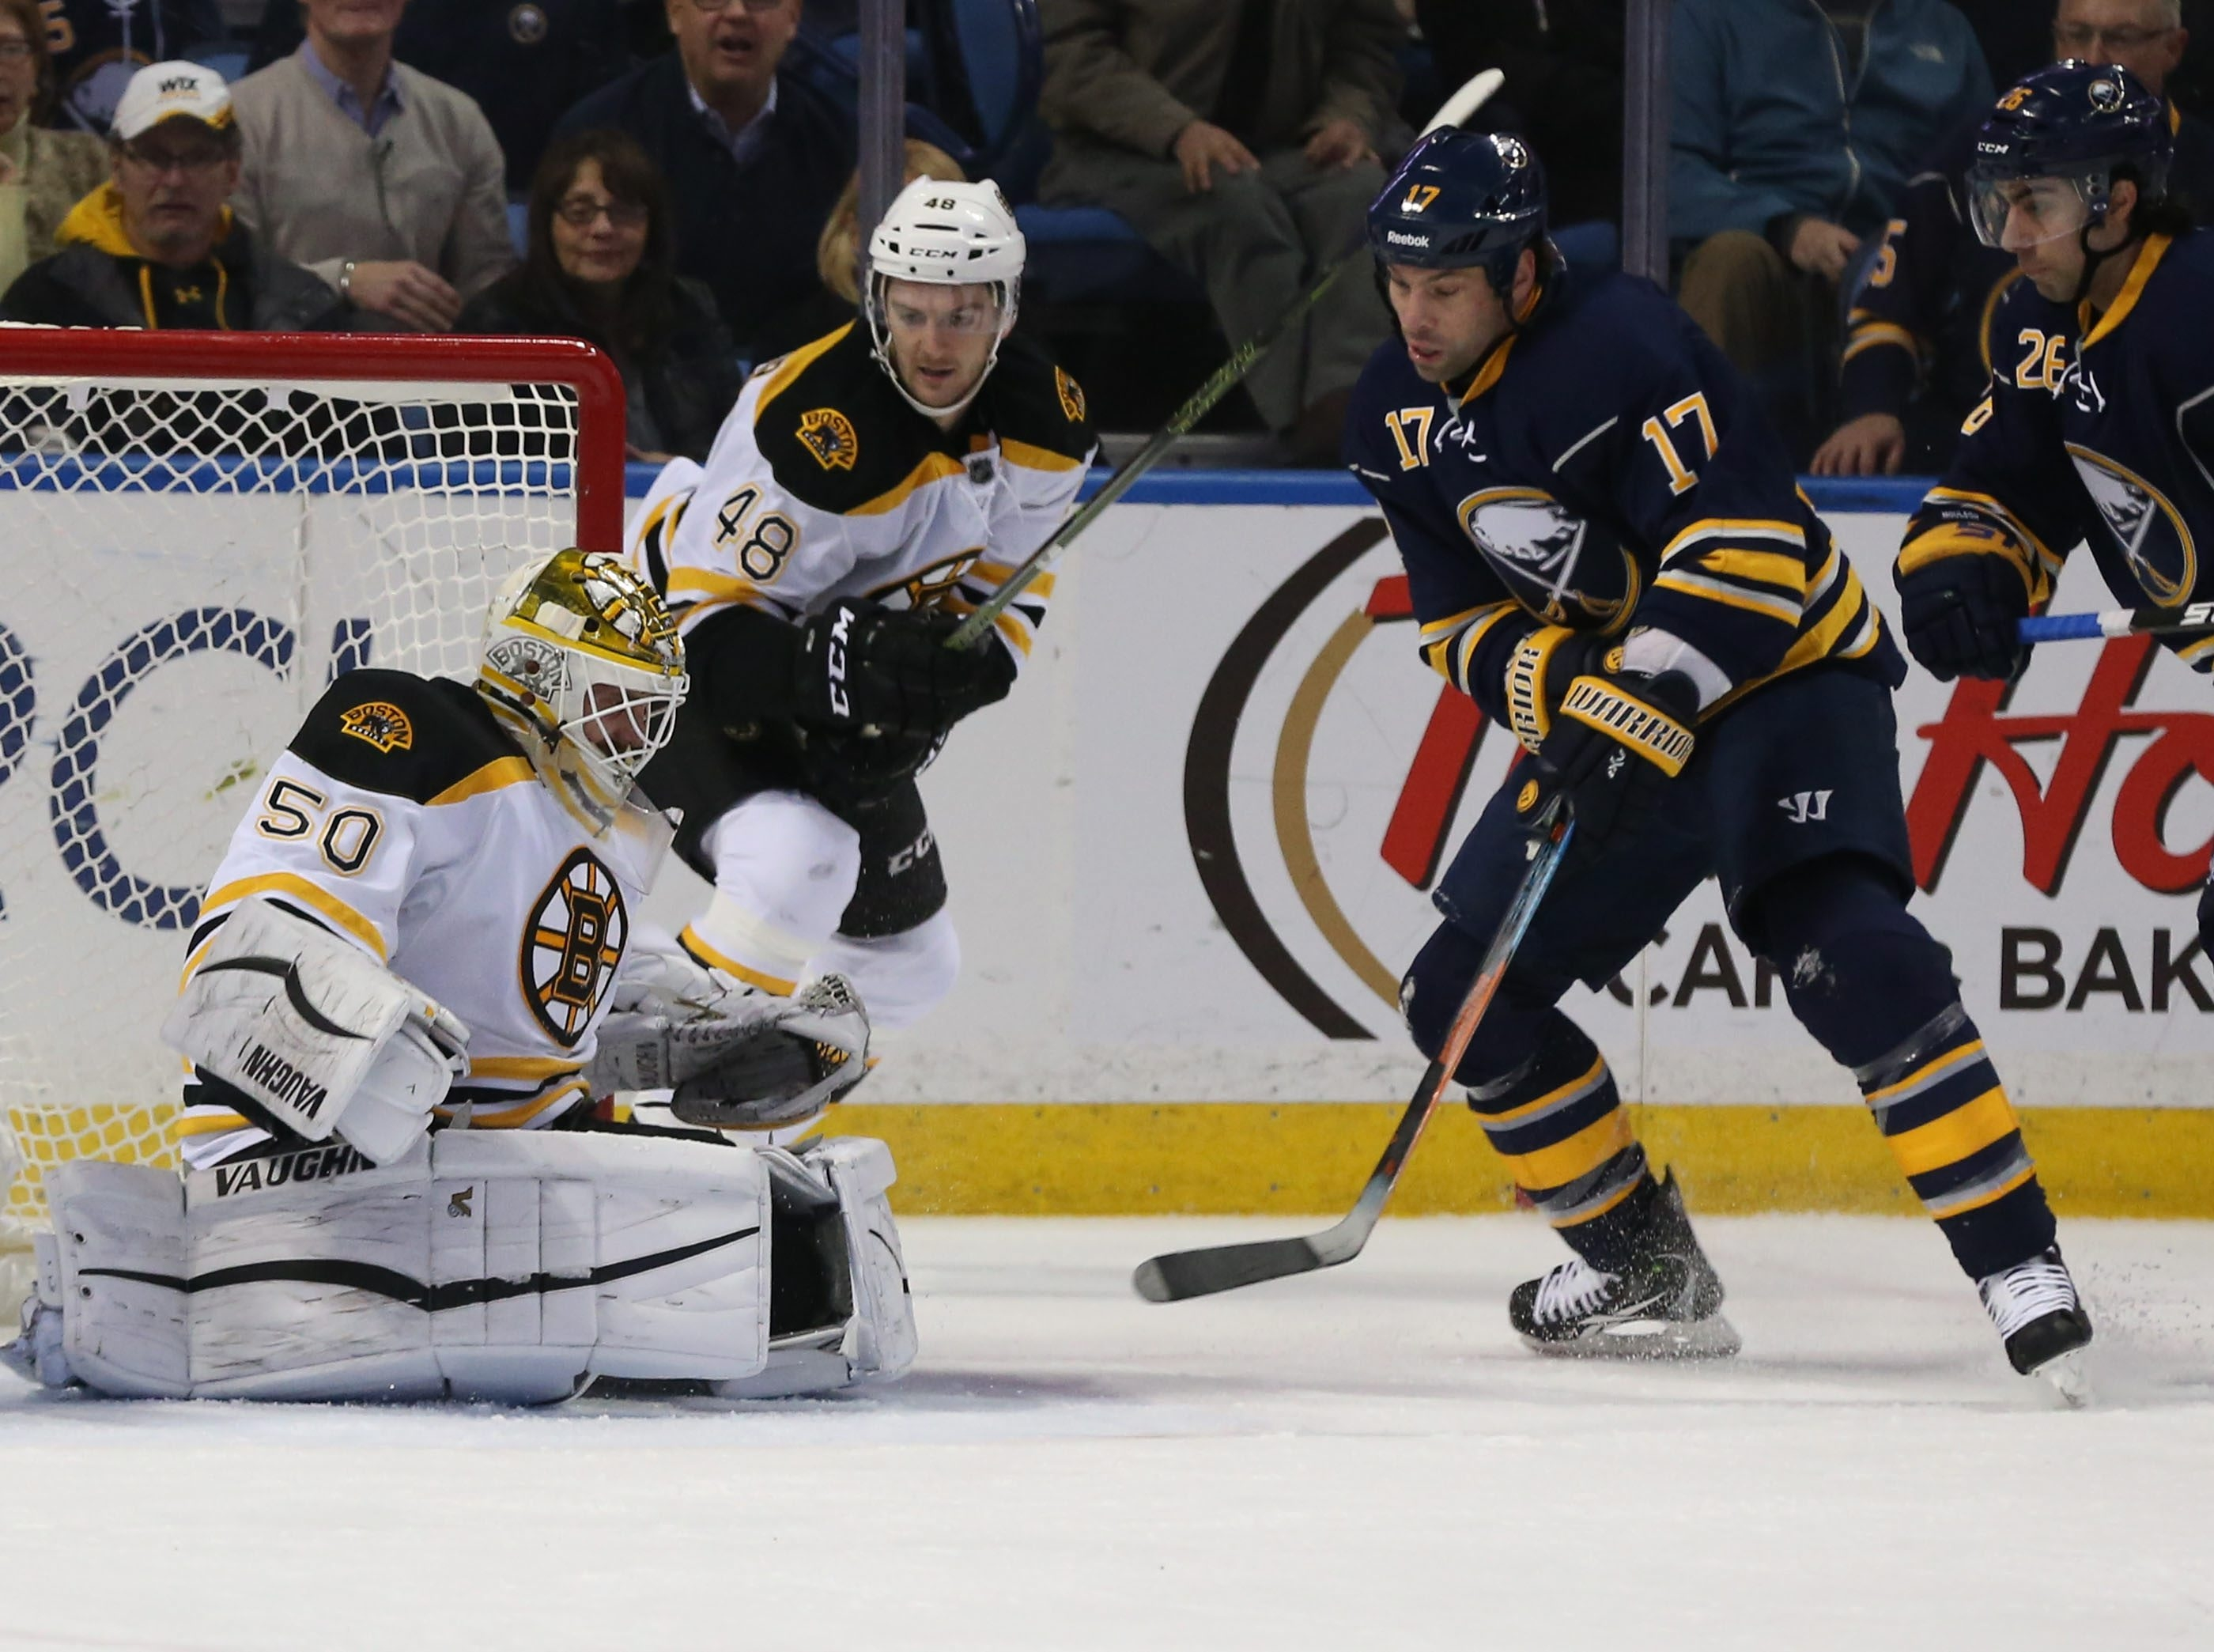 Buffalo's David Legwand scores the team's only goal in the first period against the Bruins Friday.